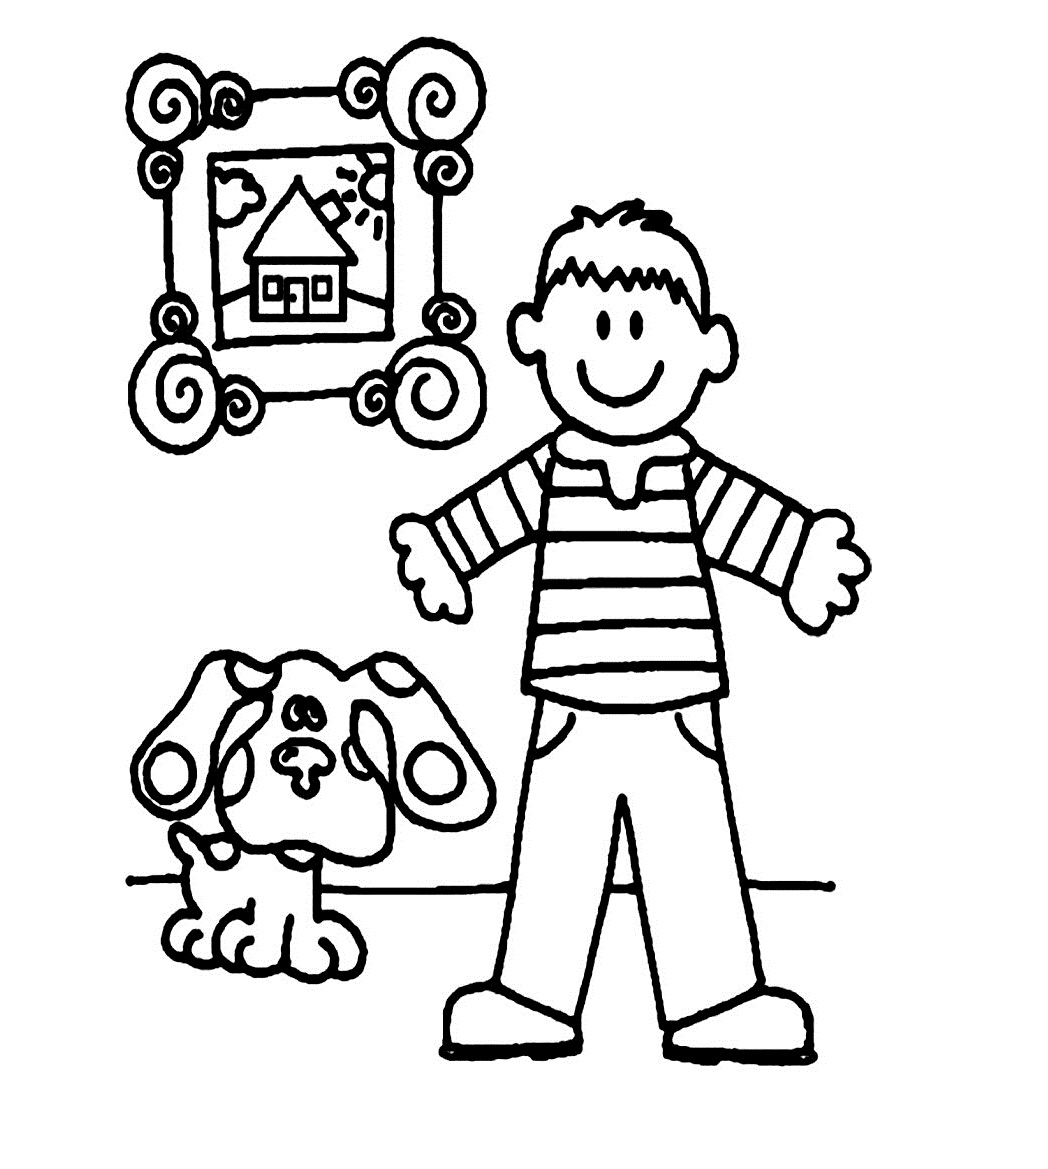 coloring pages for boys printable 10 cool coloring pages for boys to print out for free for coloring boys printable pages